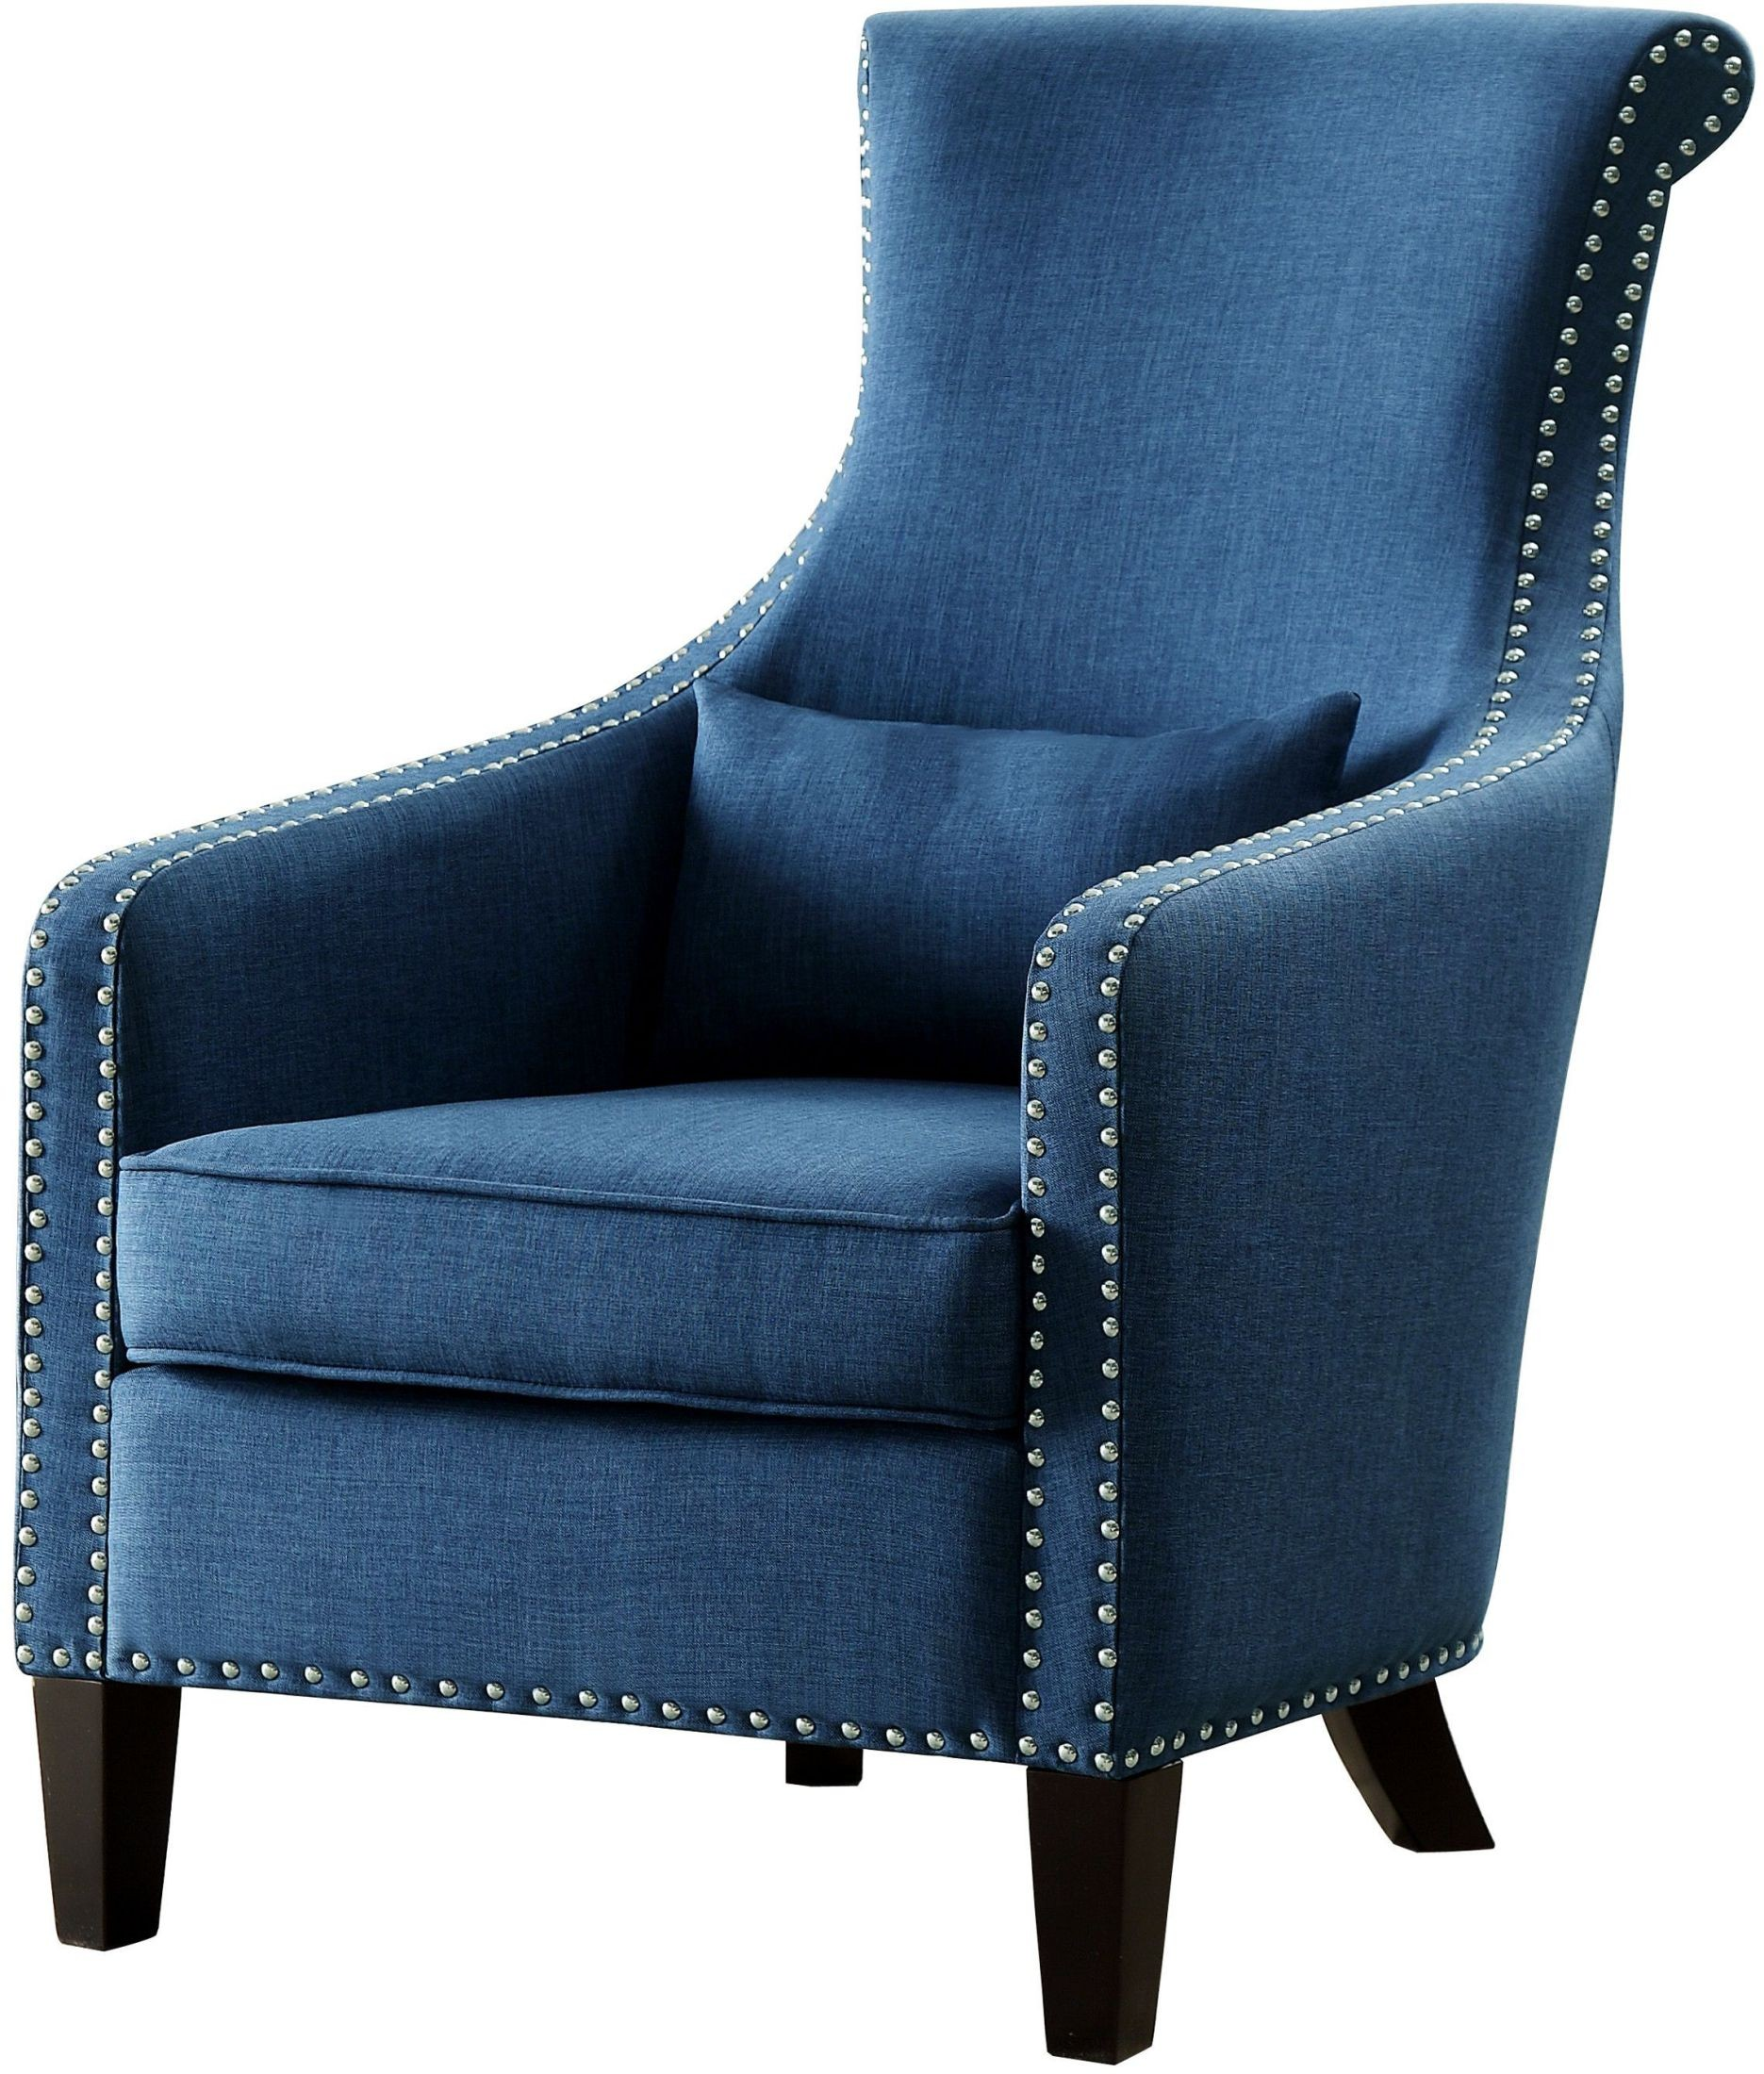 Blue Accent Chair With Arms Arles Blue Accent Chair From Homelegance Coleman Furniture